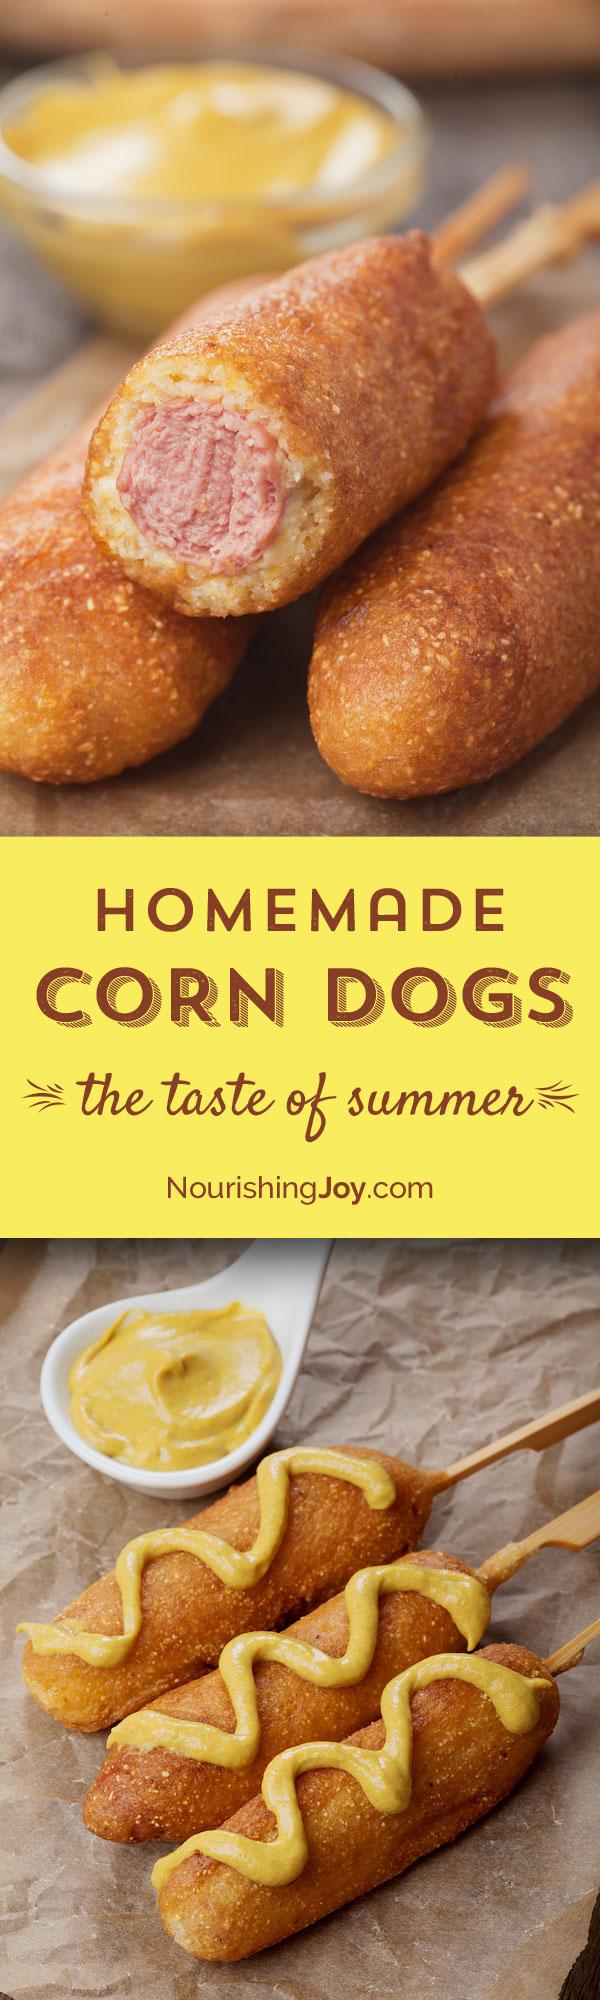 Corn dogs have gotten a bad rap - trans fats, poor quality meats, you name it. But they don't have to be that way! They're delicious and meet all your nutritional and ethical criteria when you make them at home. (My sister prefers making them with veggie dogs, but my favorite is free range sustainable beef. What's yours?)